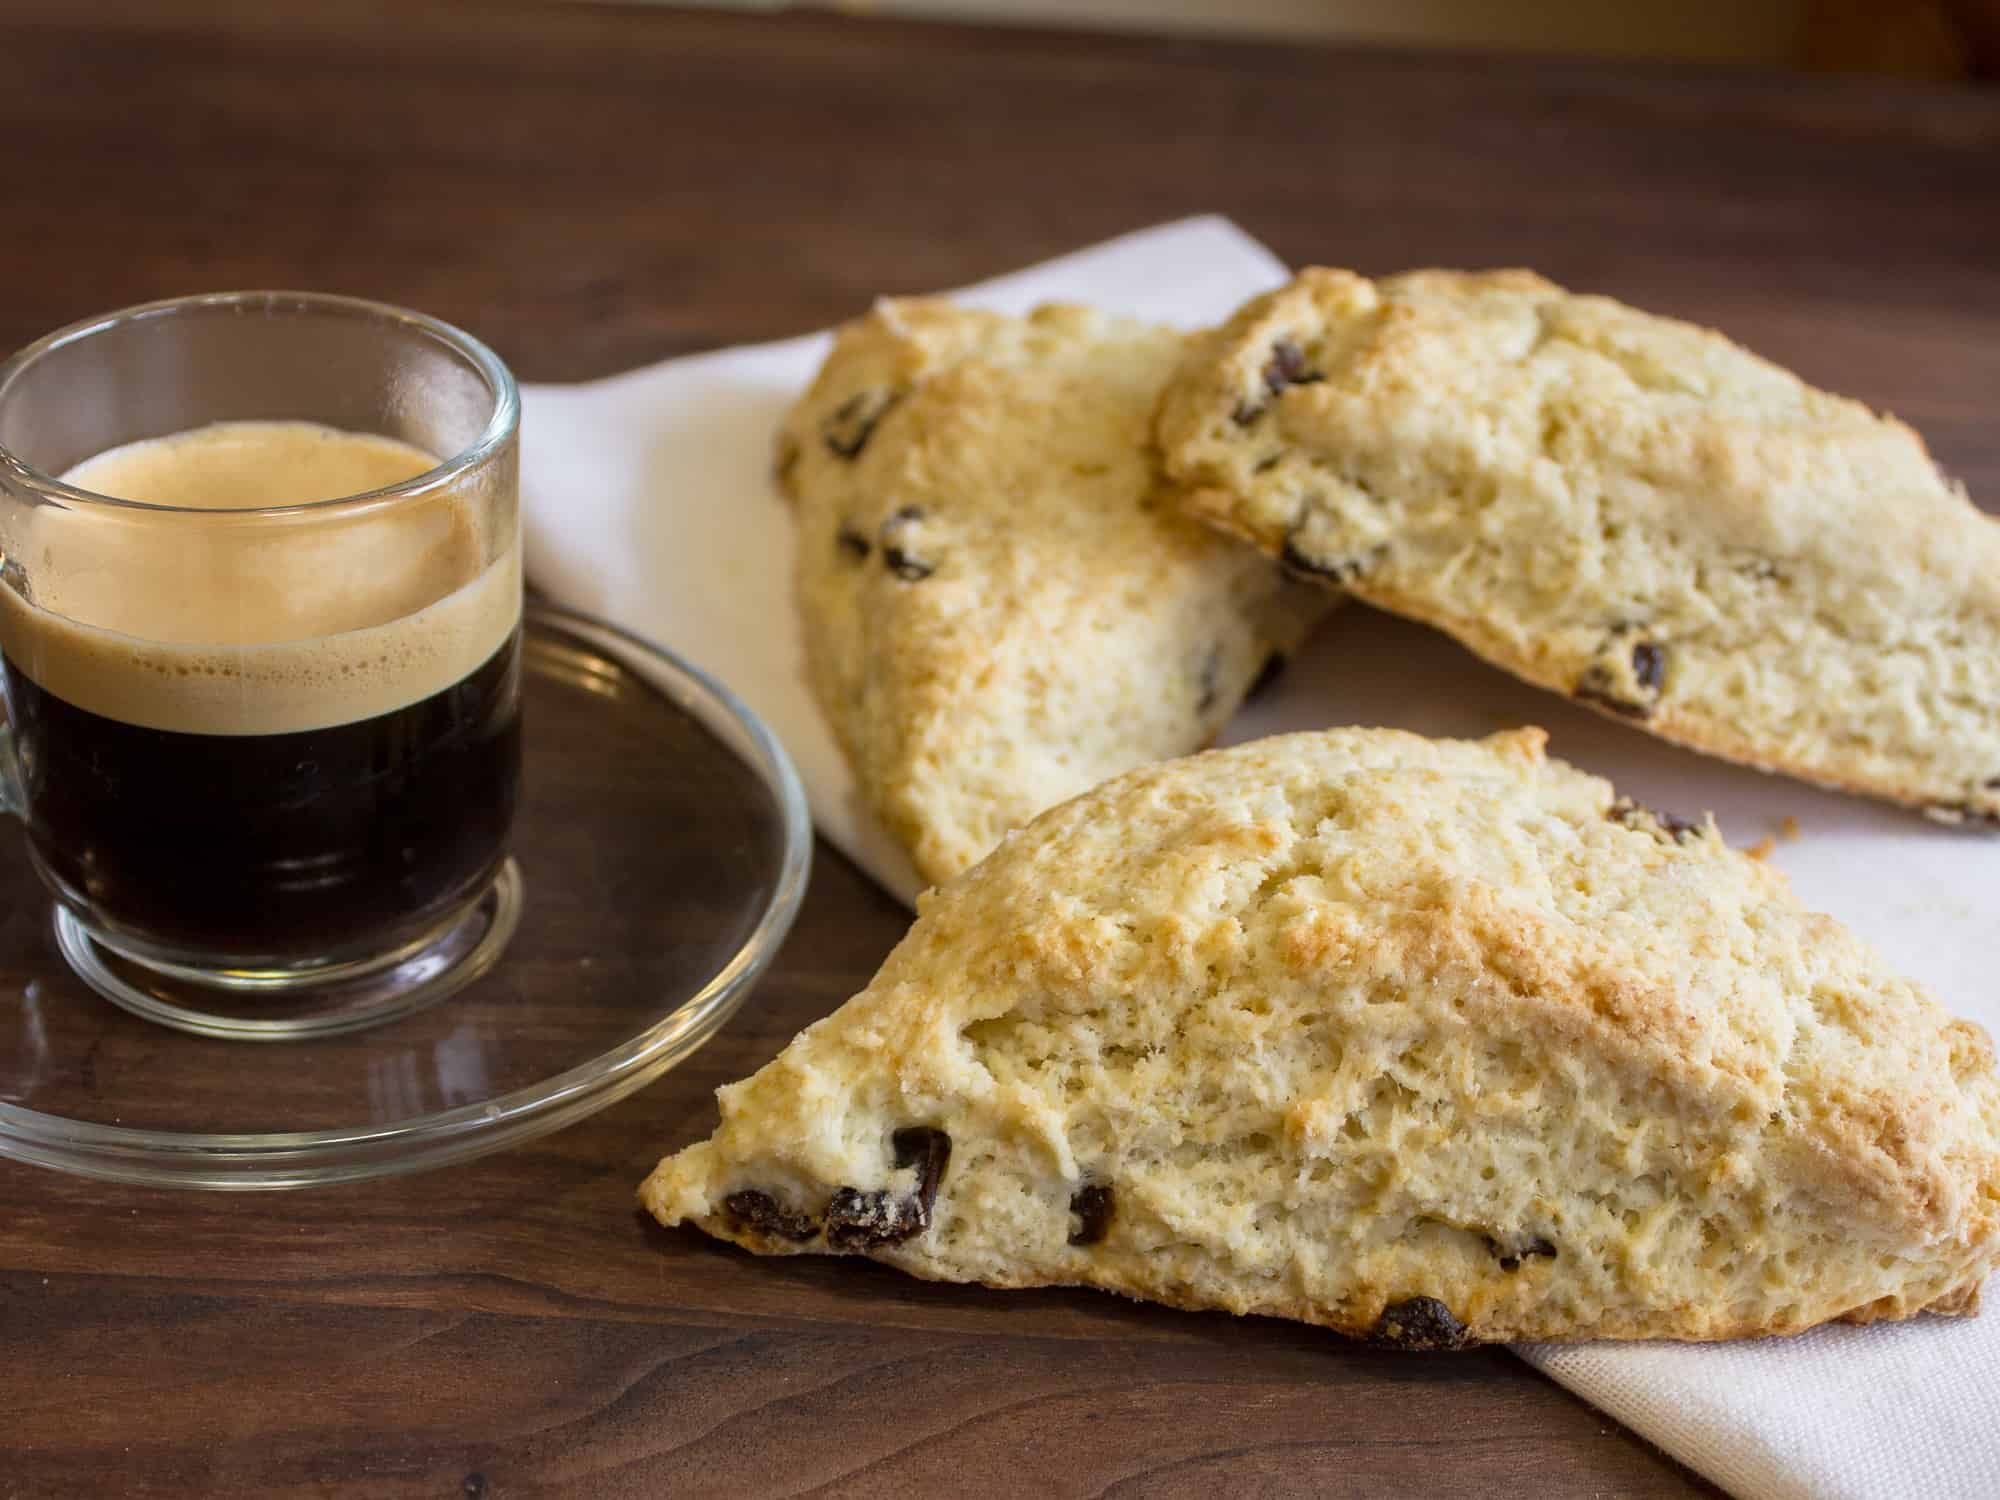 These raisin scones are buttery and flaky baked biscuits. Super easy to make and bake. The raisins can be substituted with dried cranberries or some fresh blueberries, strawberries etc.